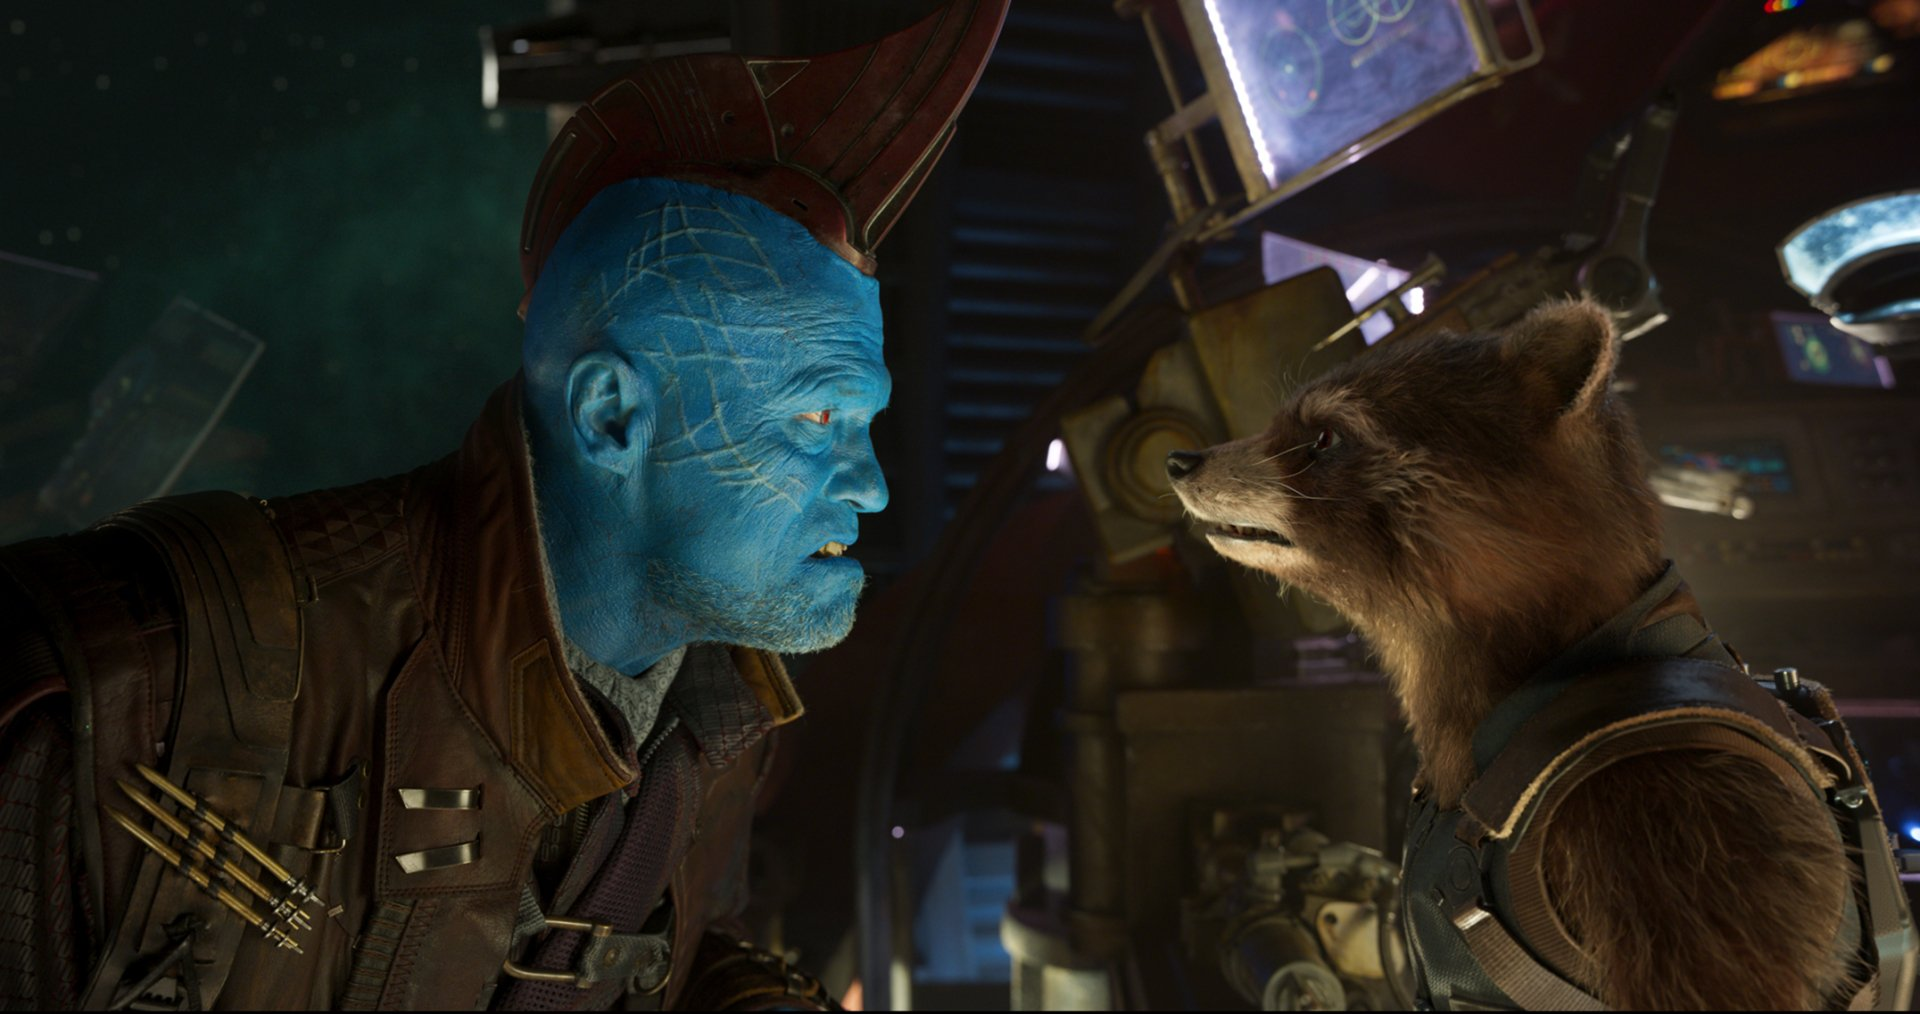 Movie - Guardians of the Galaxy Vol. 2  Michael Rooker Yondu Udonta Rocket Raccoon Wallpaper